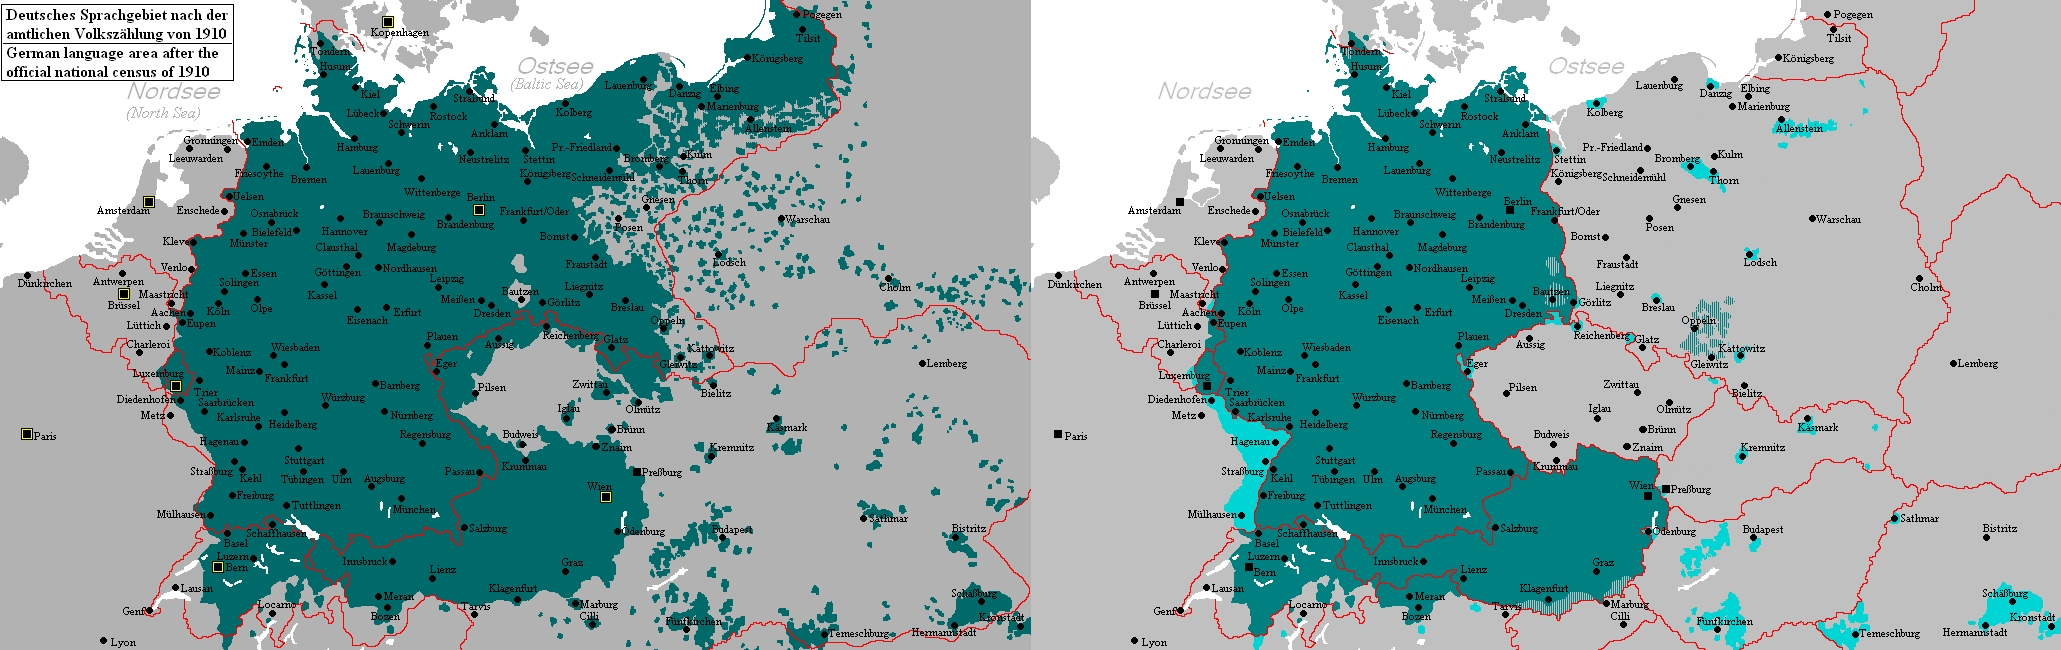 Map Of German-Speaking Areas In 1910 And After 1945 : Mapporn with German Speaking Countries Map